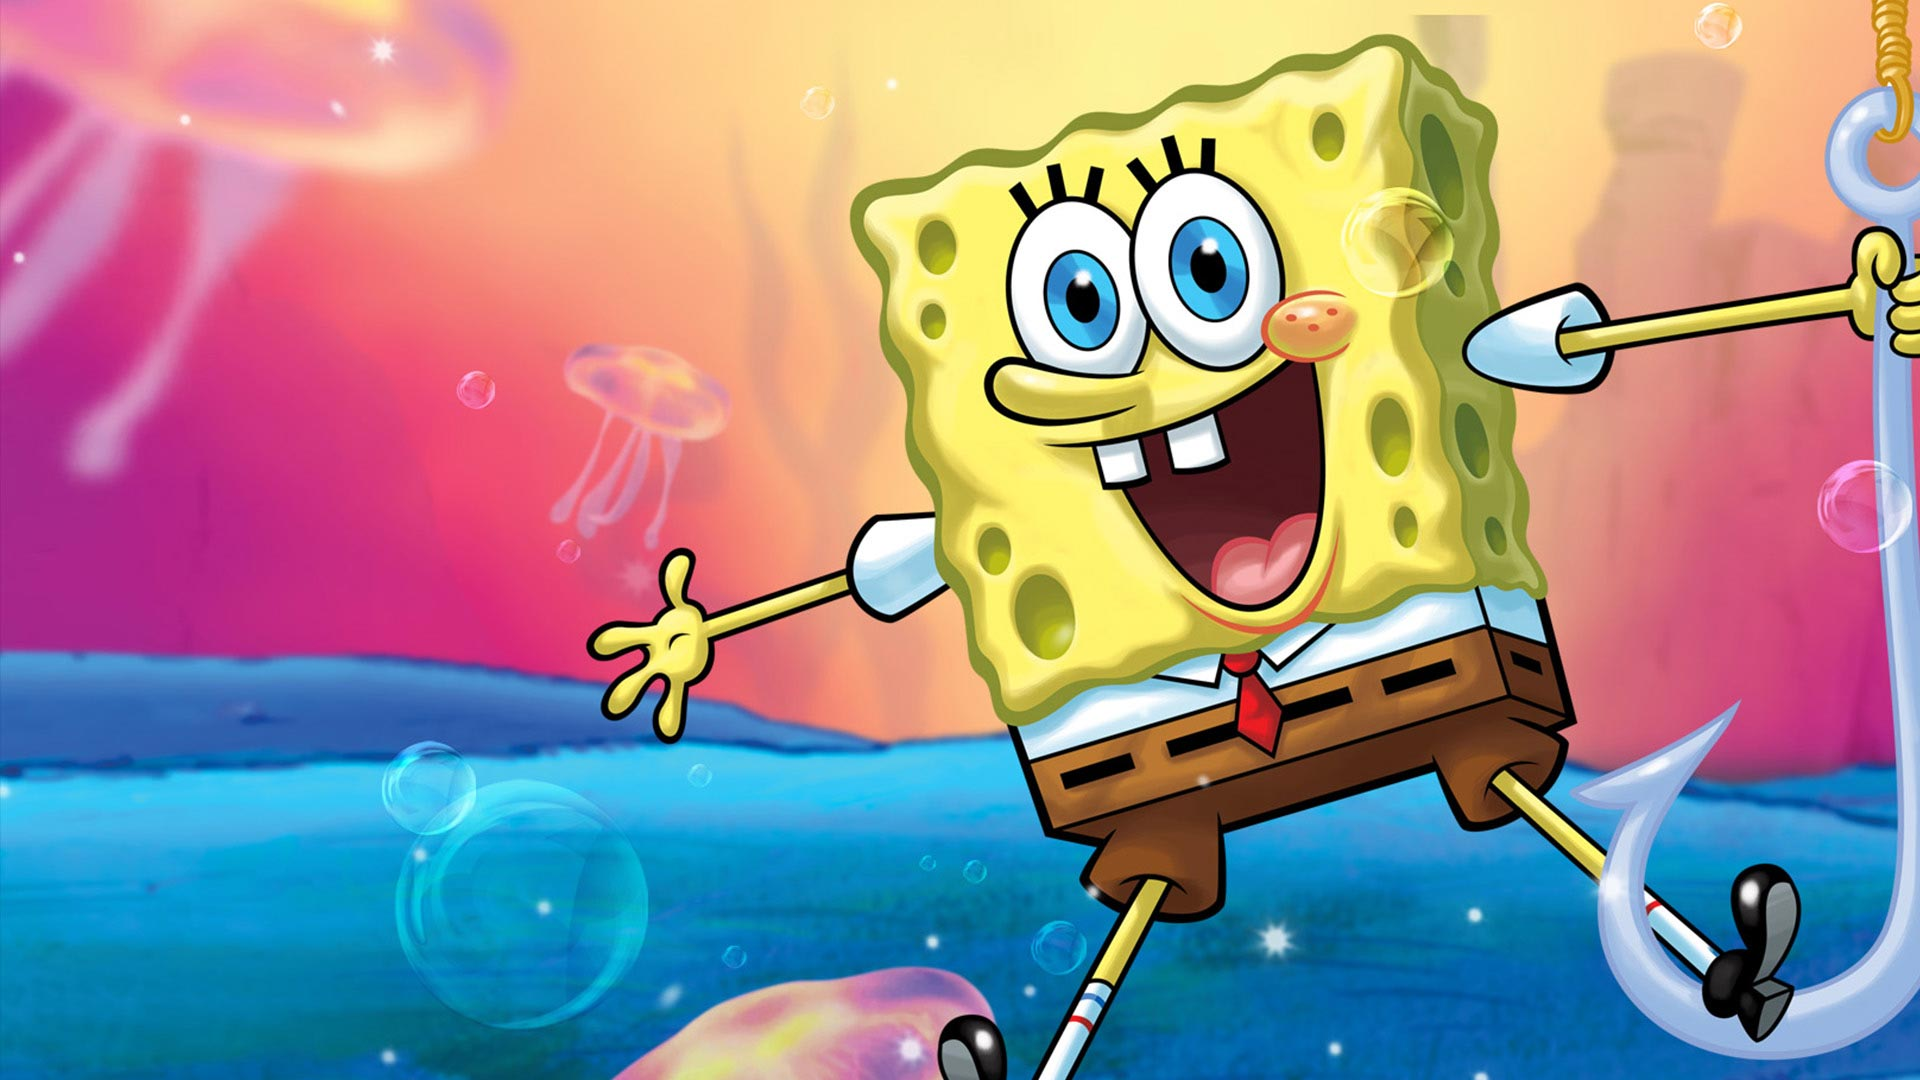 Amazon com: Watch SpongeBob SquarePants Season 1 | Prime Video